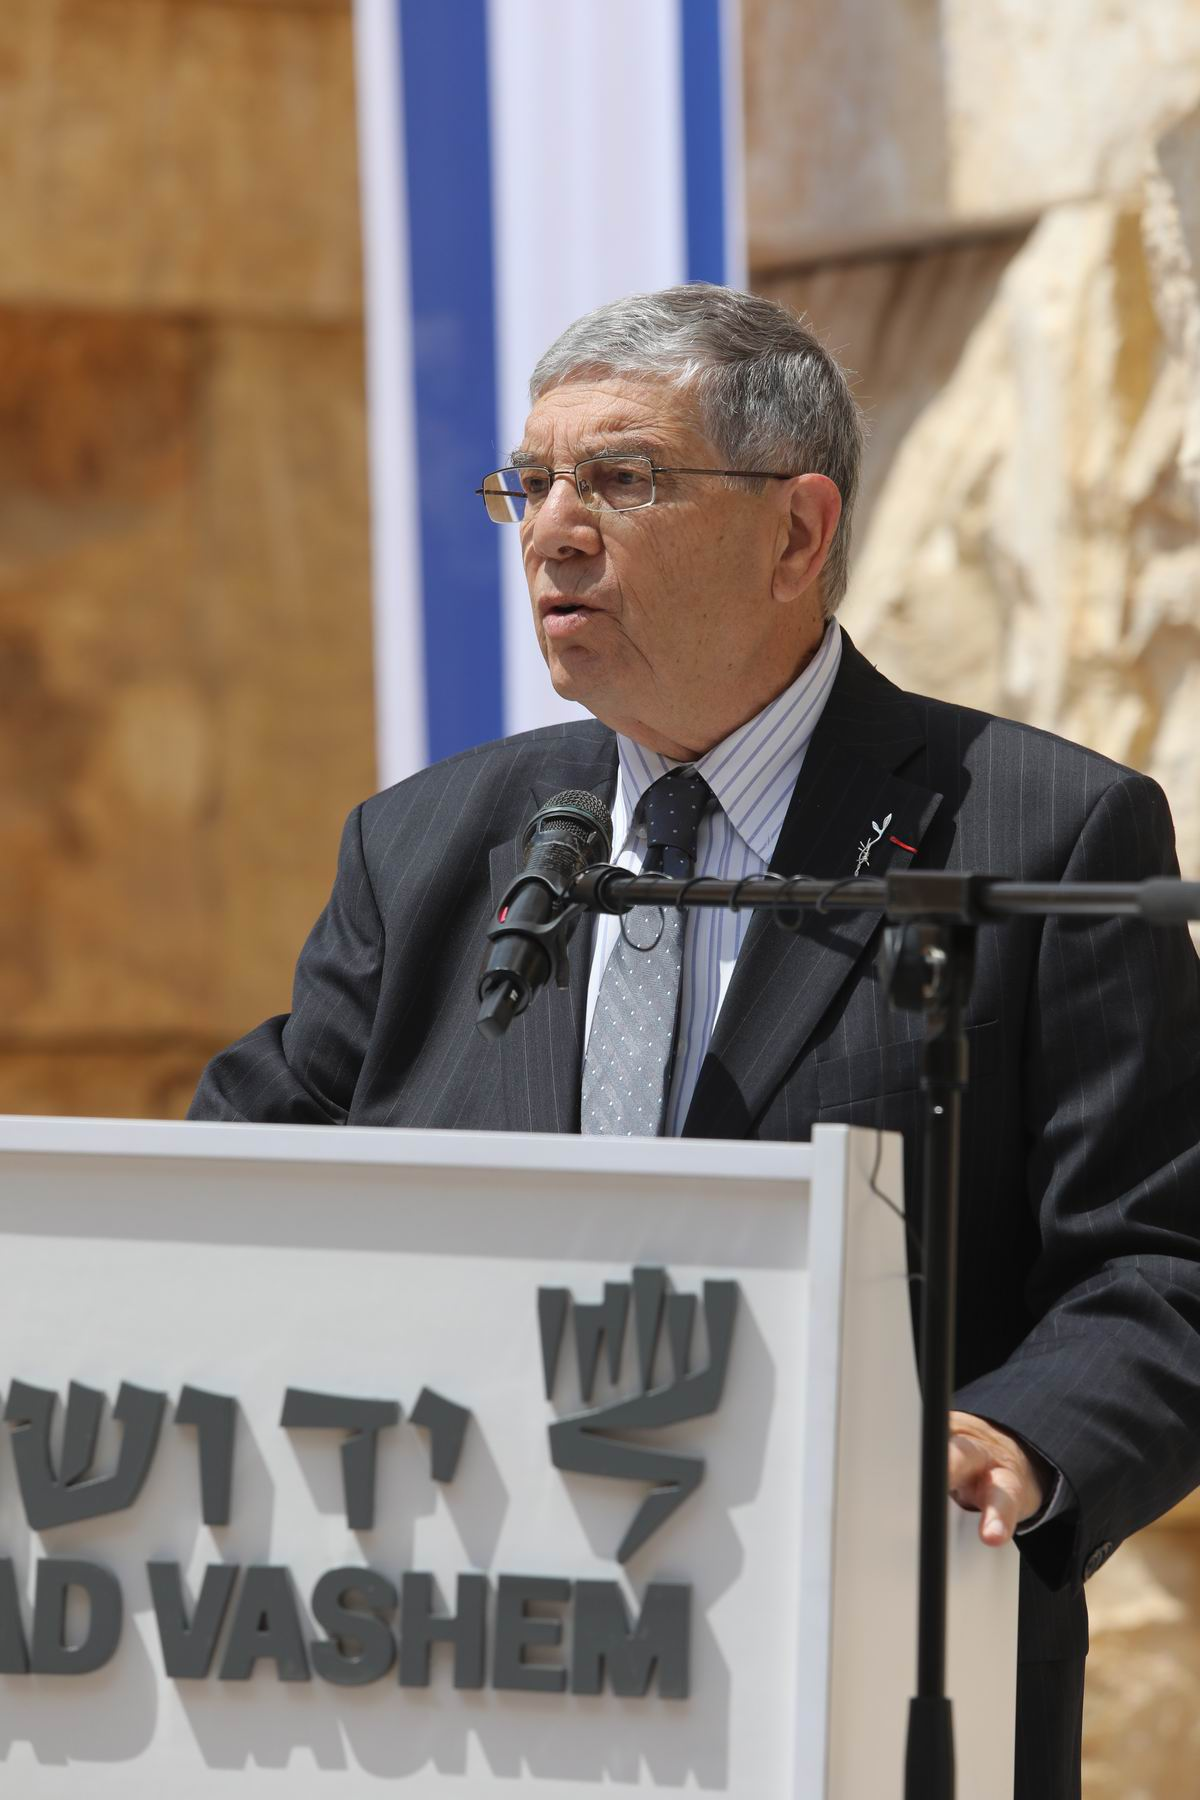 Avner Shalev: Connecting with the past gives meaning to the future